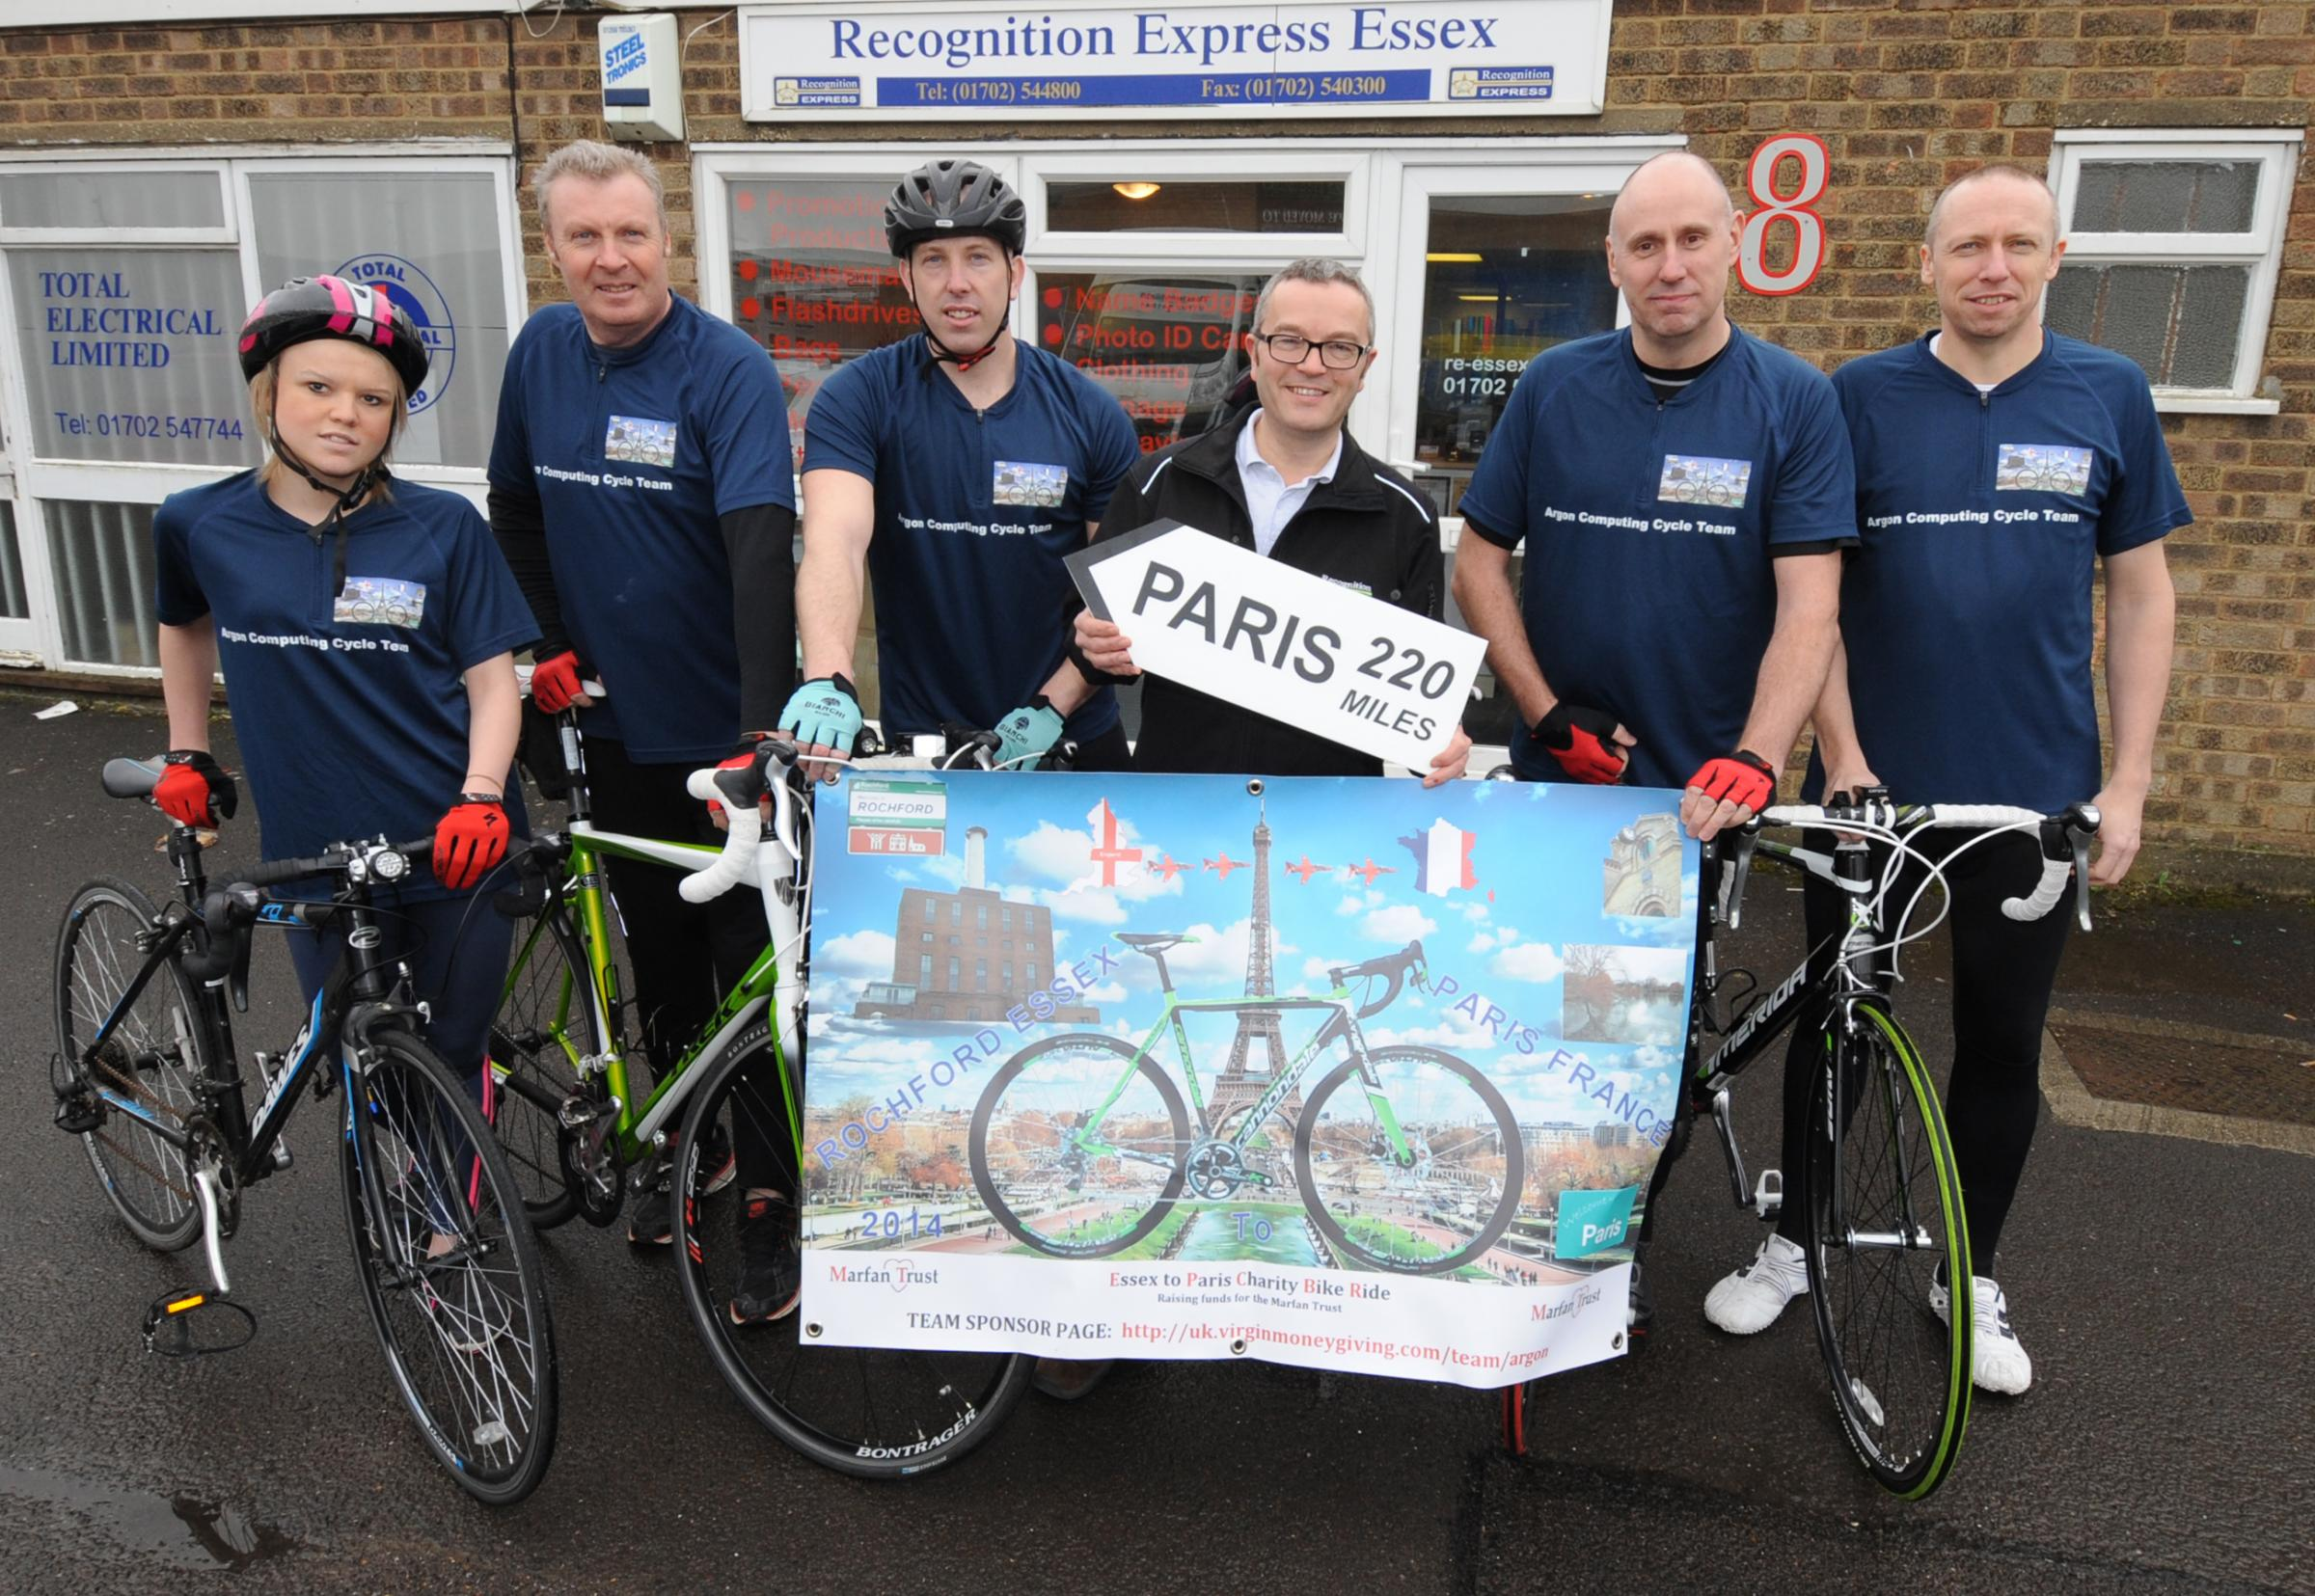 Ready to ride – Chelsea Stock, Don Graves, Stephen O'Leary, Kevin Buckle, Jason Smith and sponsor Graham Marshall